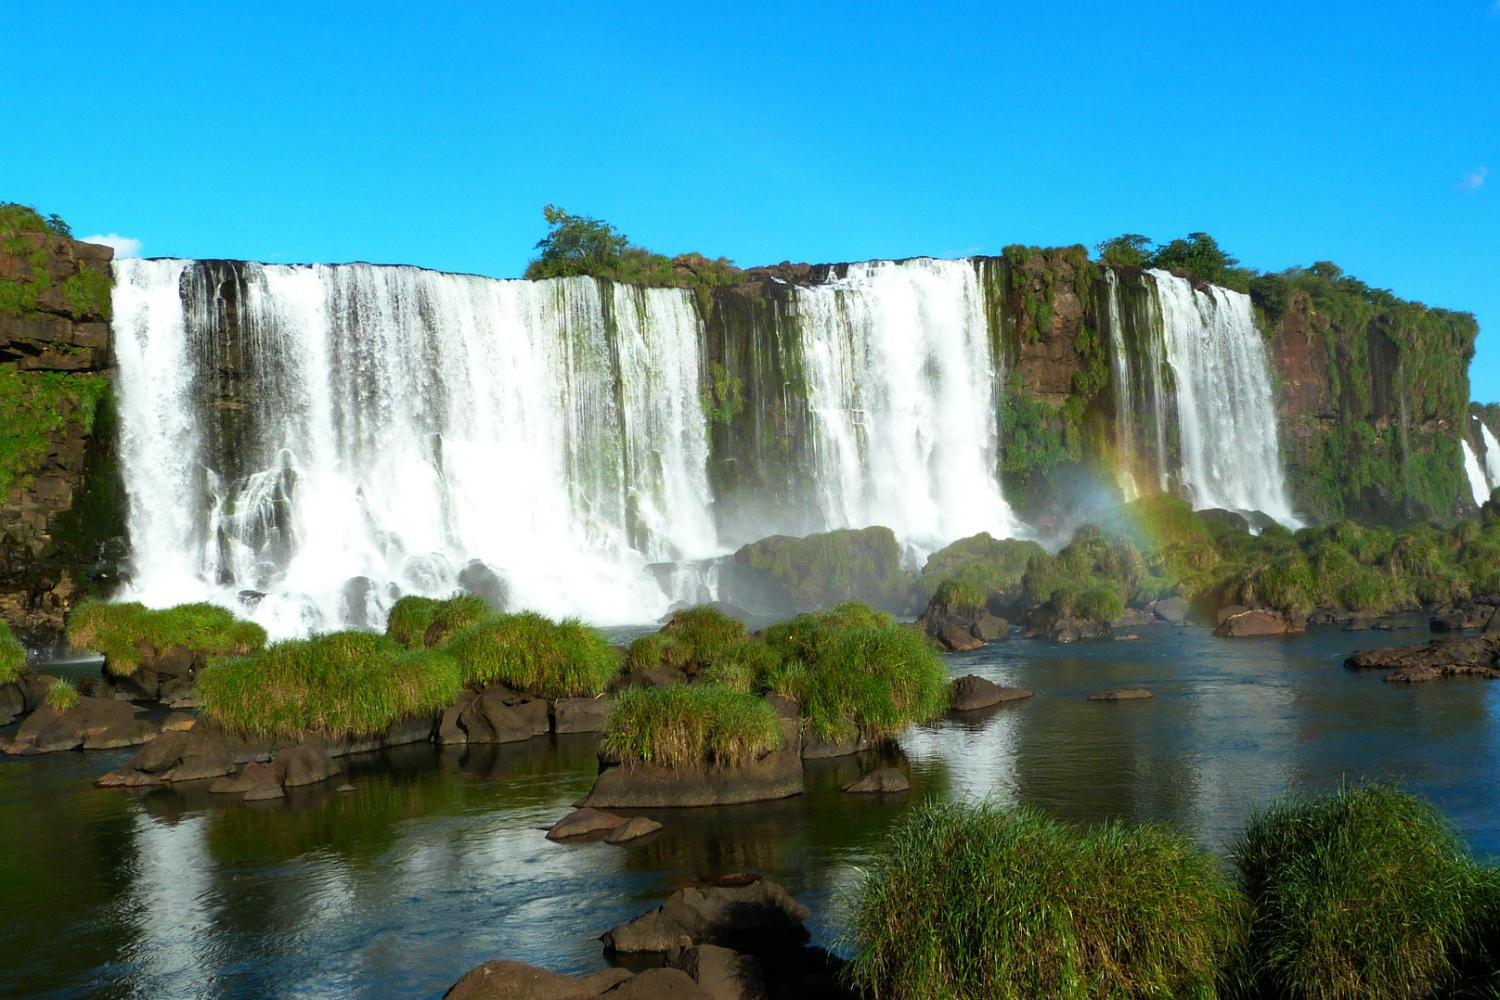 4x4 in the Jungle, Boat Ride & Iguazu Falls